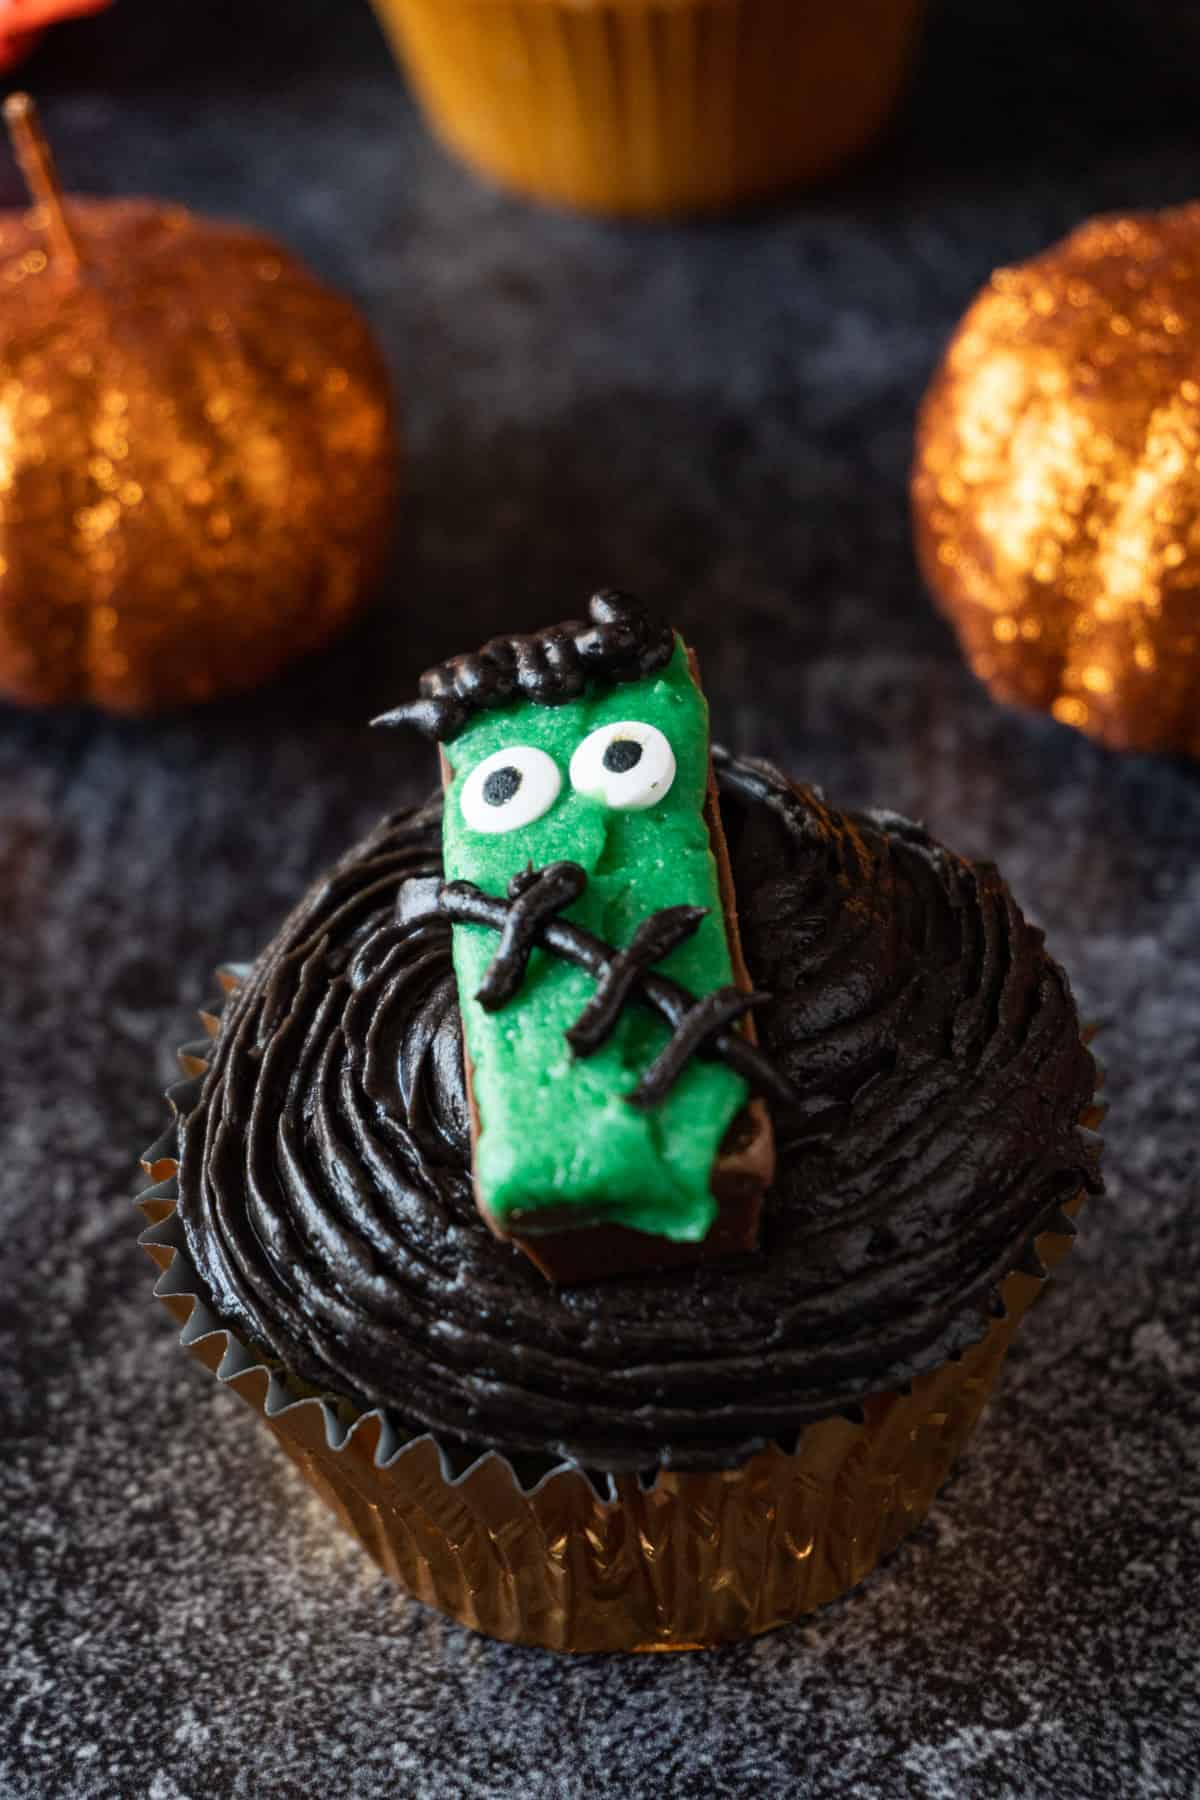 frankenstein cupcake close up